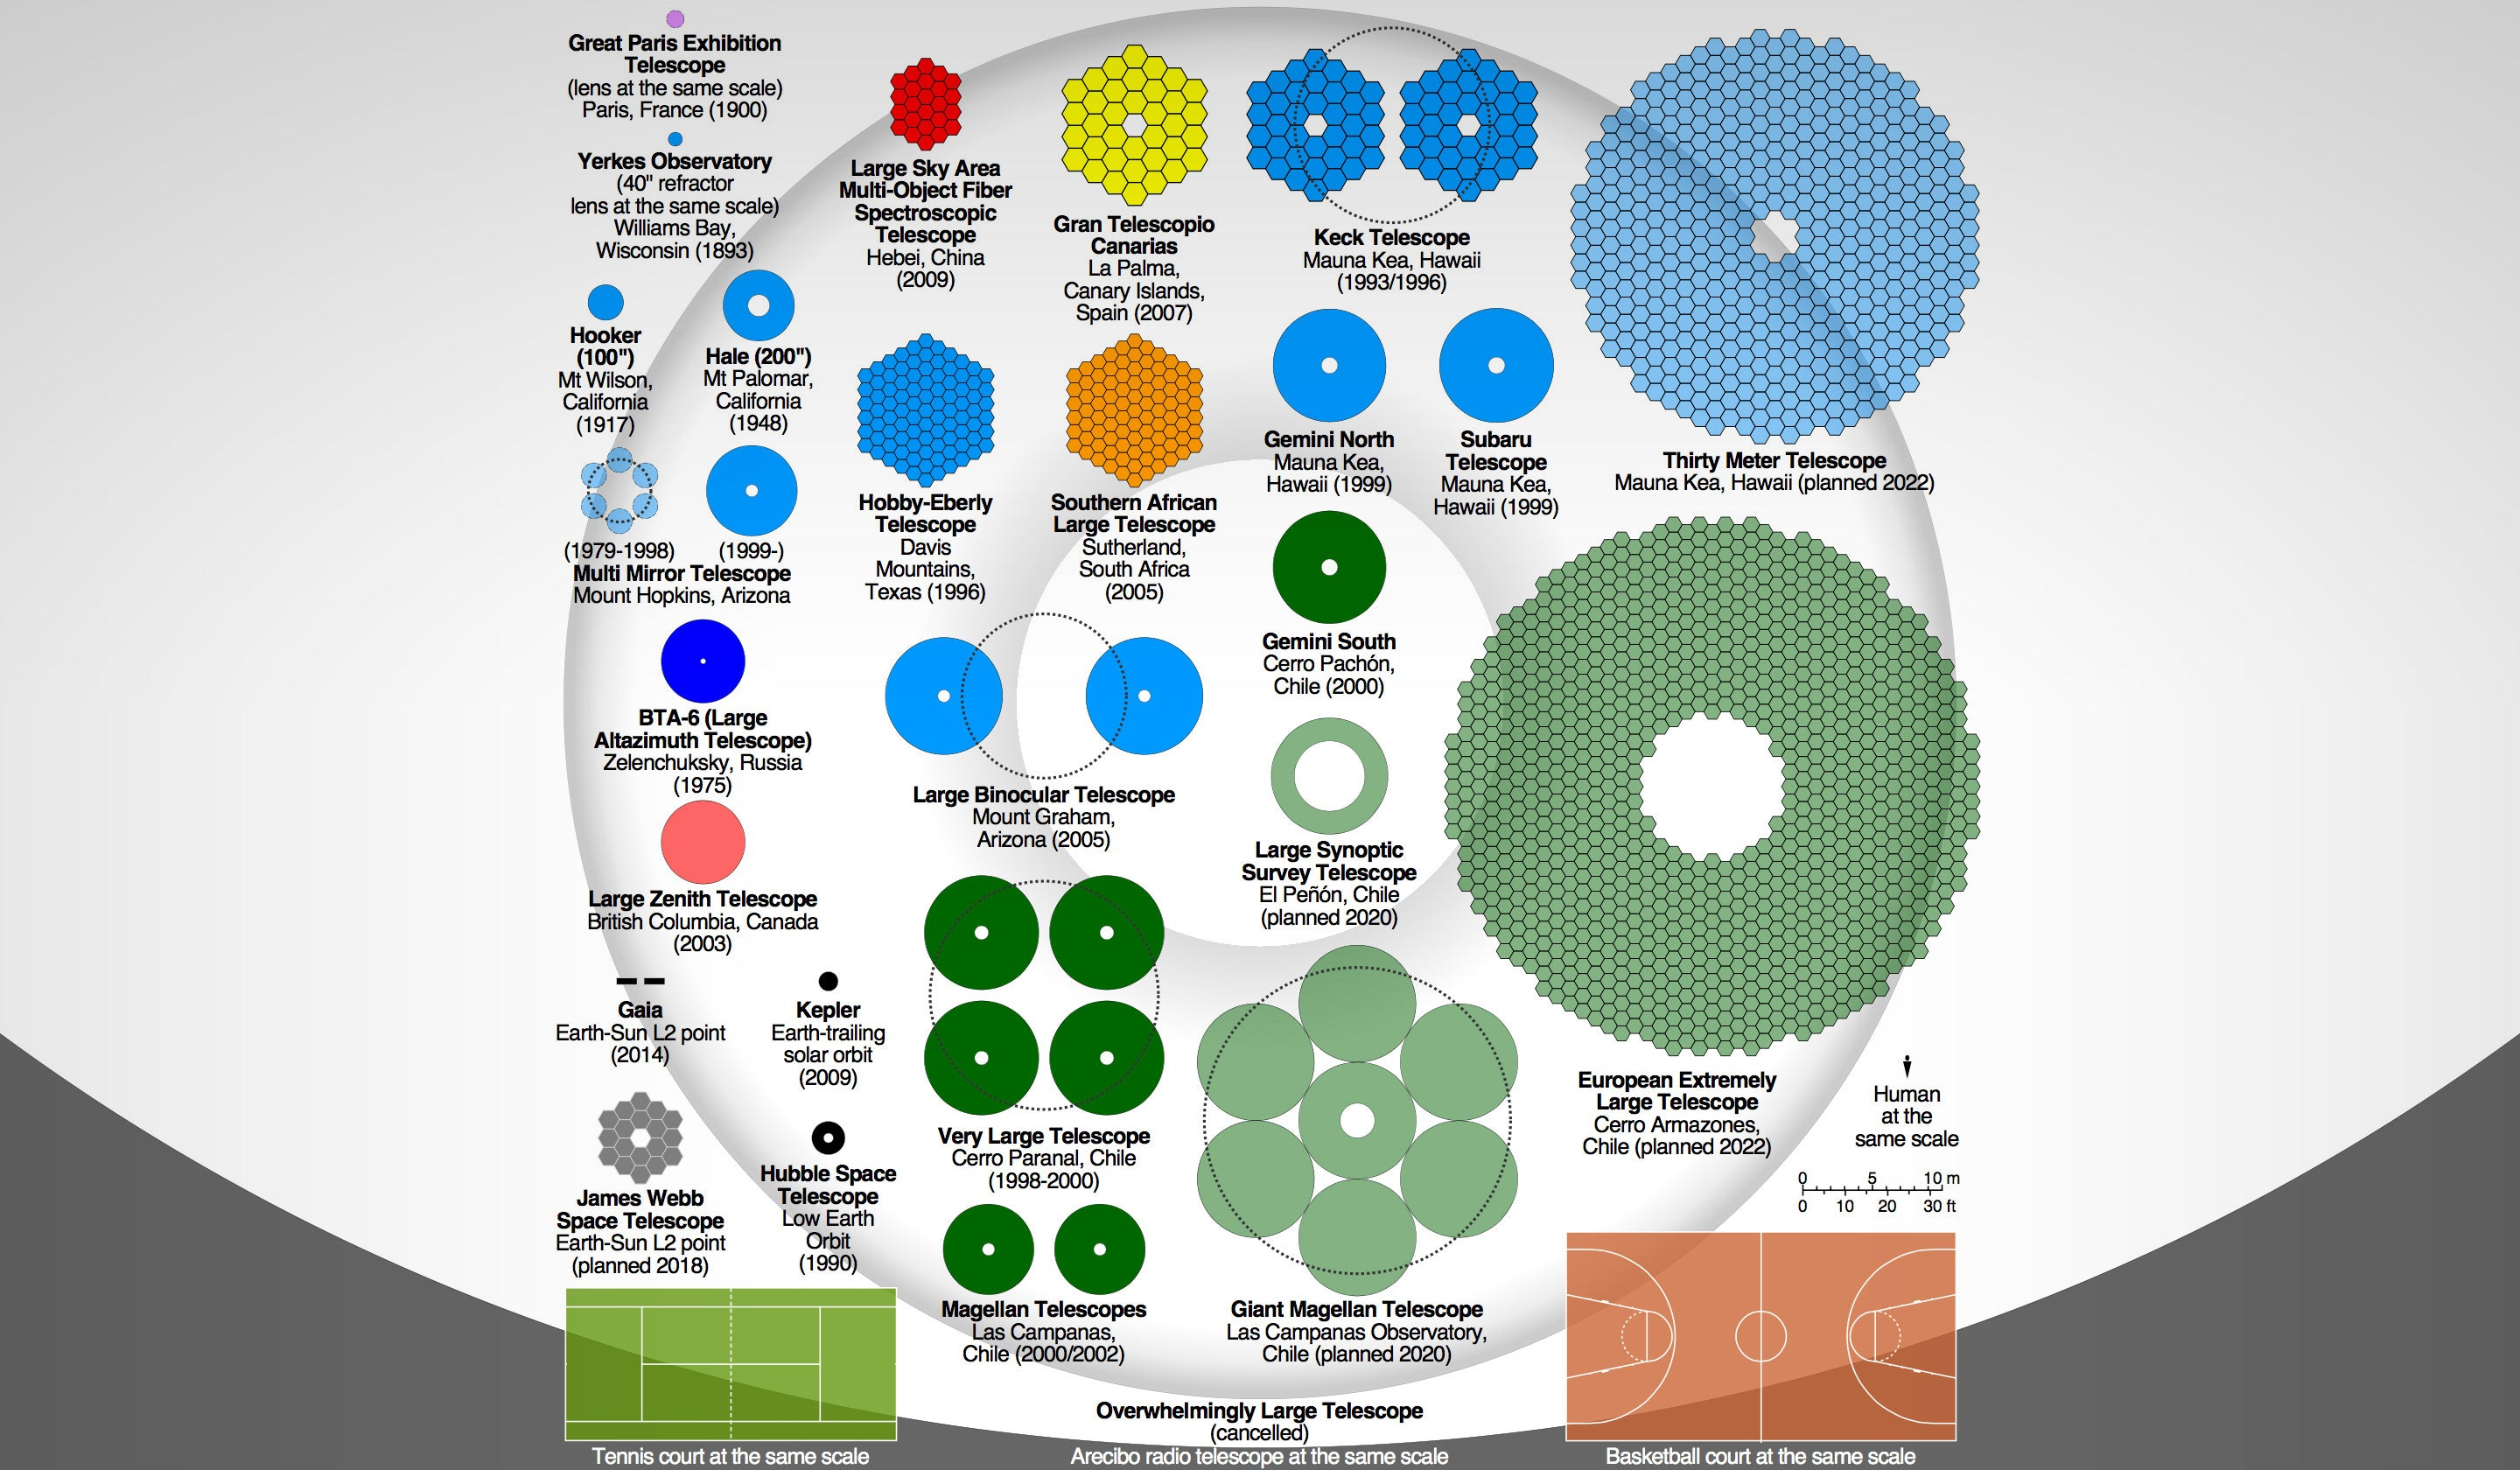 Size comparison of optical telescopes from 1893 to 2022